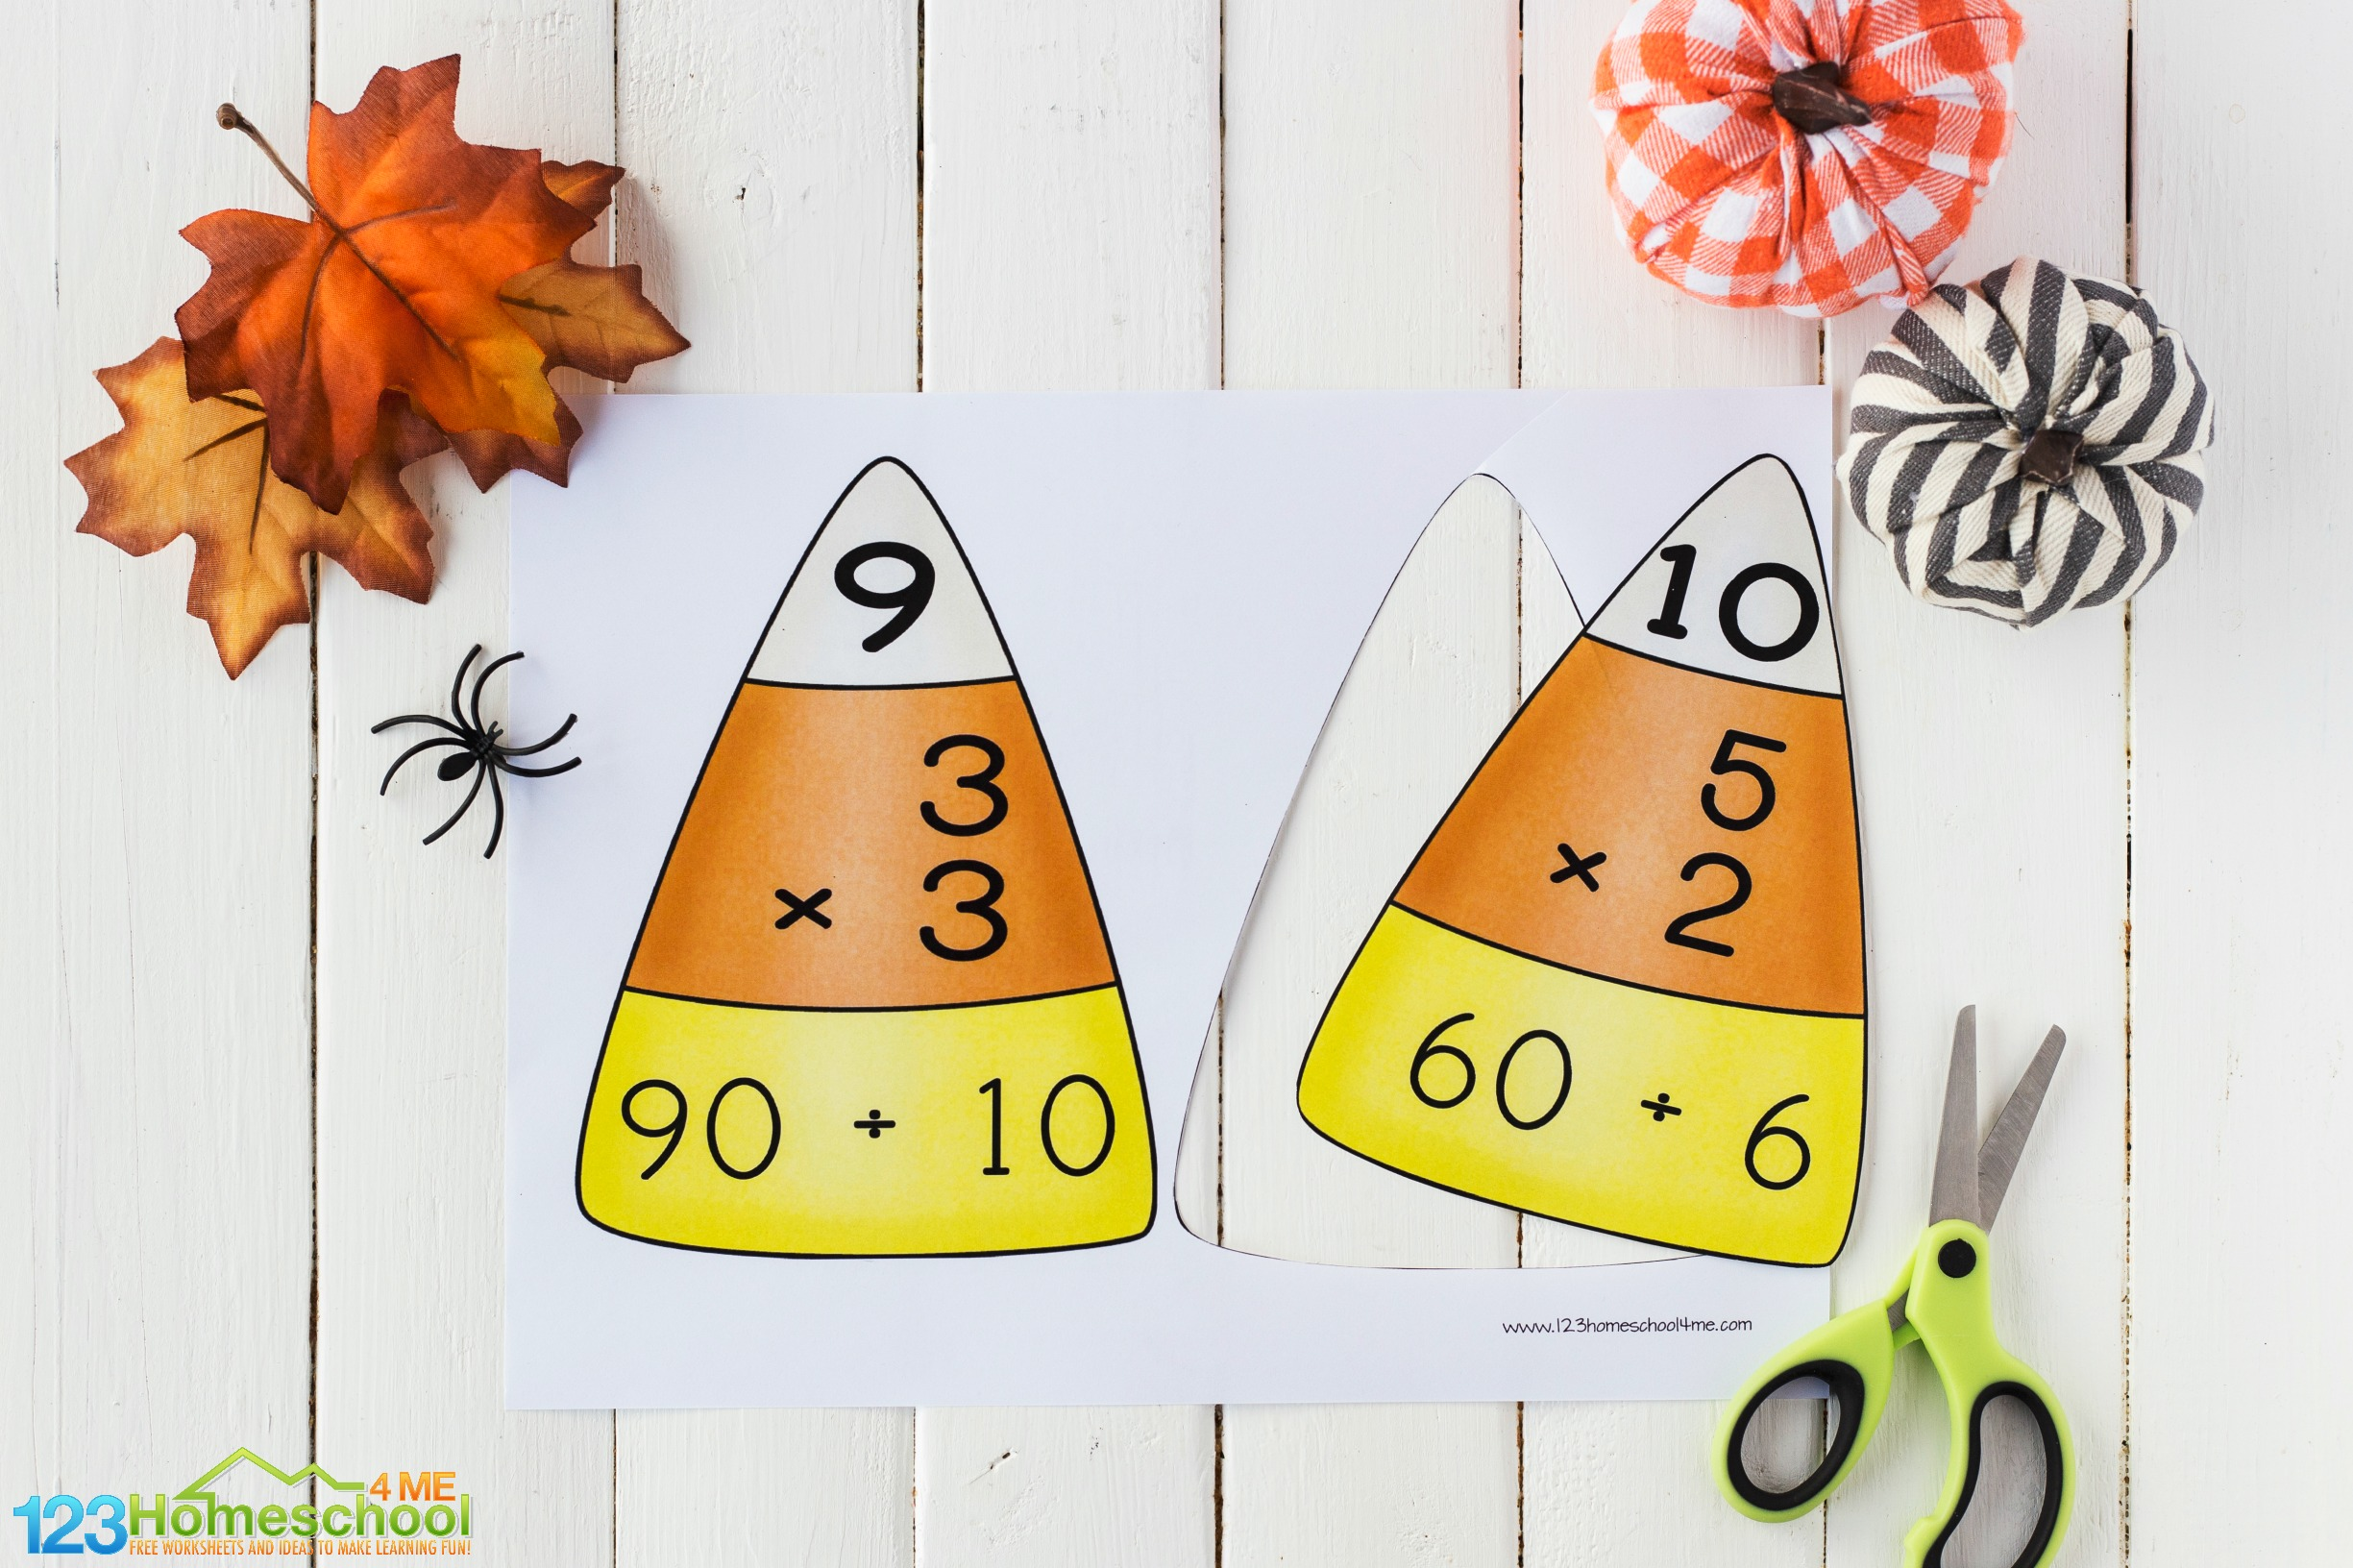 free Candy Corn Division puzzles for grade 3, grade 4, grade 5, and grade 6 students to practice division facts in October as a Halloween themed math activity or math center